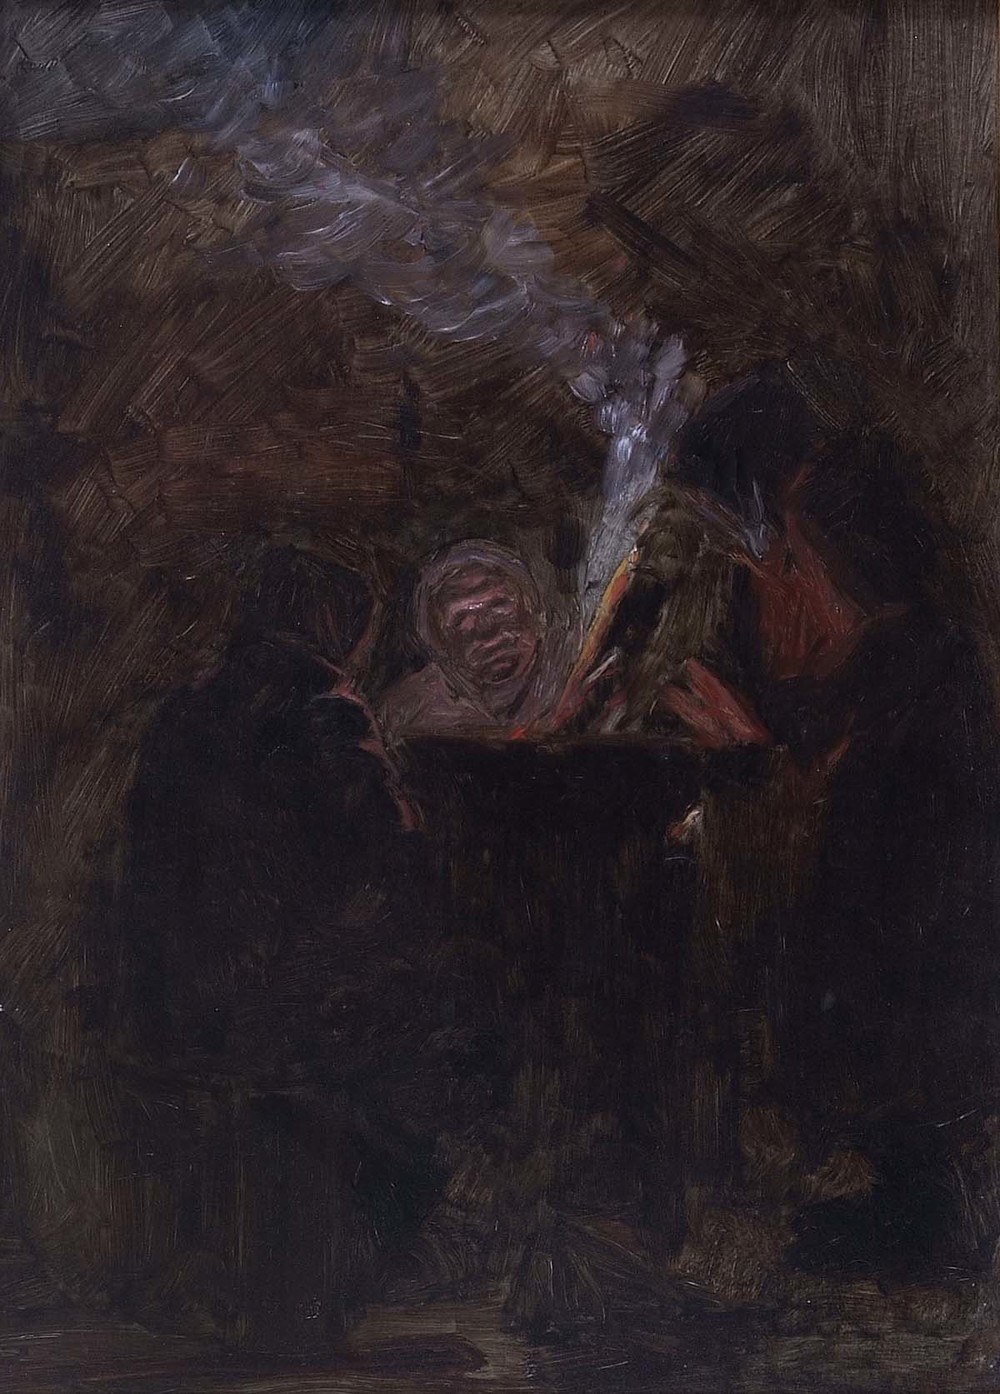 Homeless Men around a Fire,  12 x 8.5 inches, oil on masonite